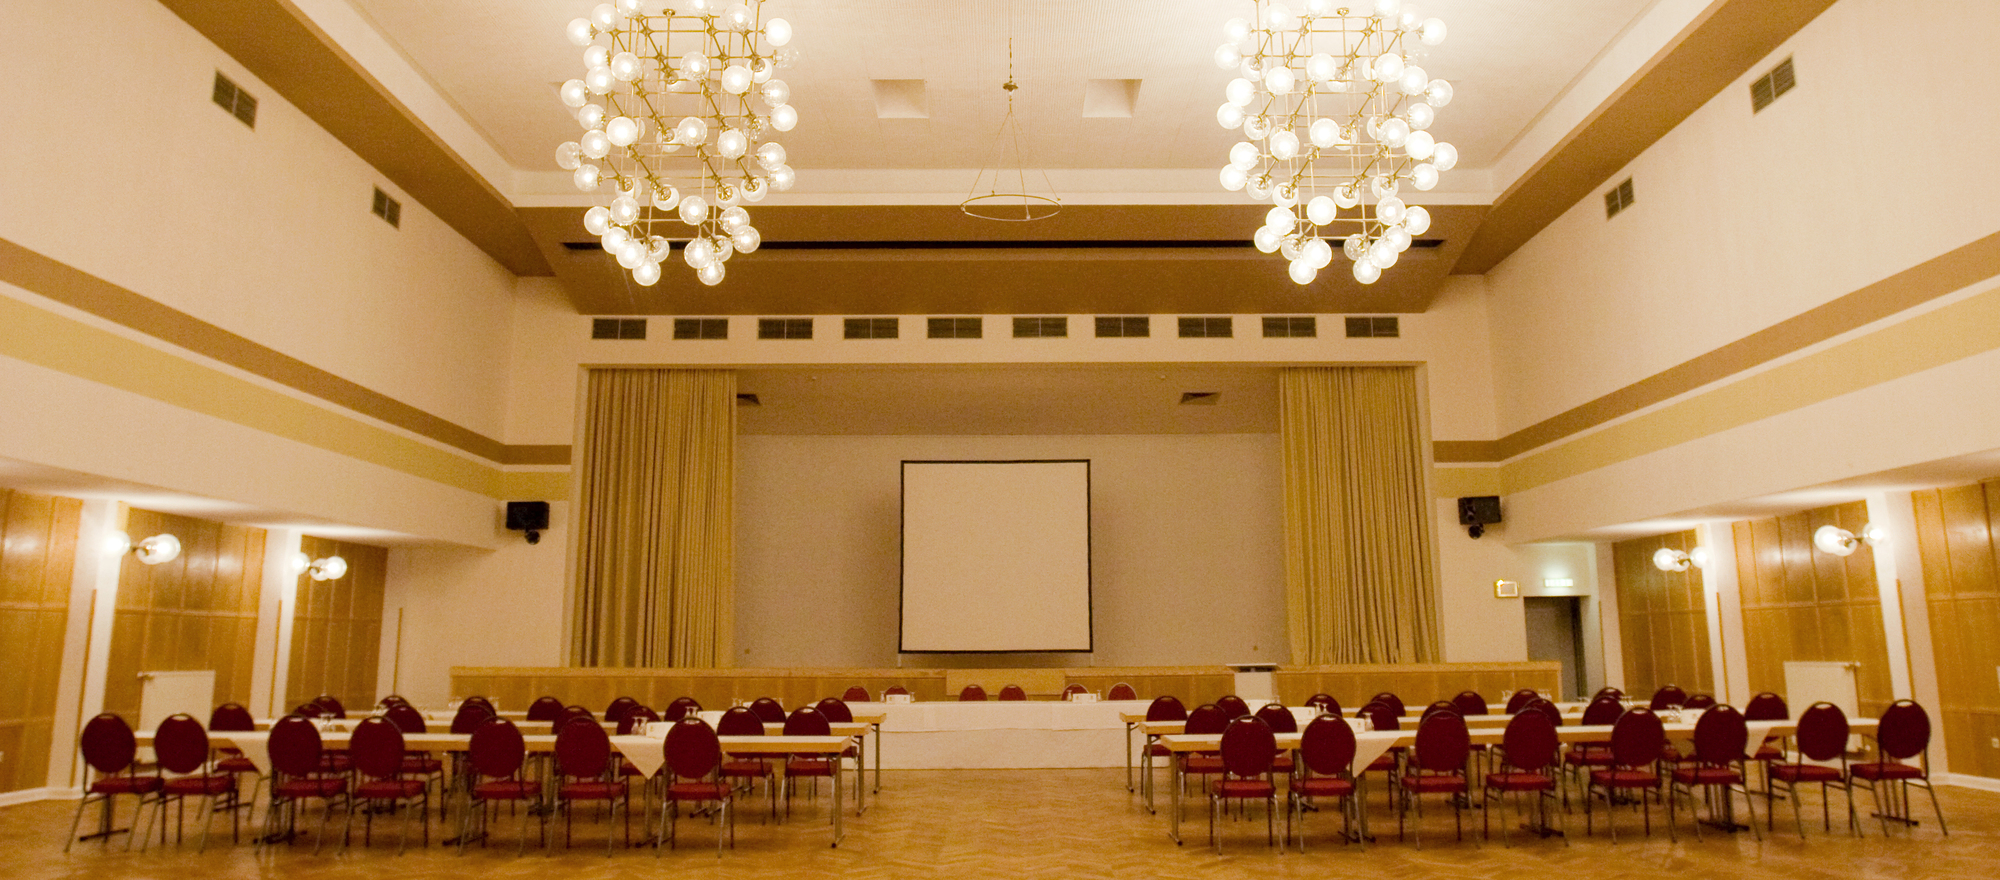 Perfect for your events and celebrations the hall of the Ringhotel Dreiwasser in Sternberg